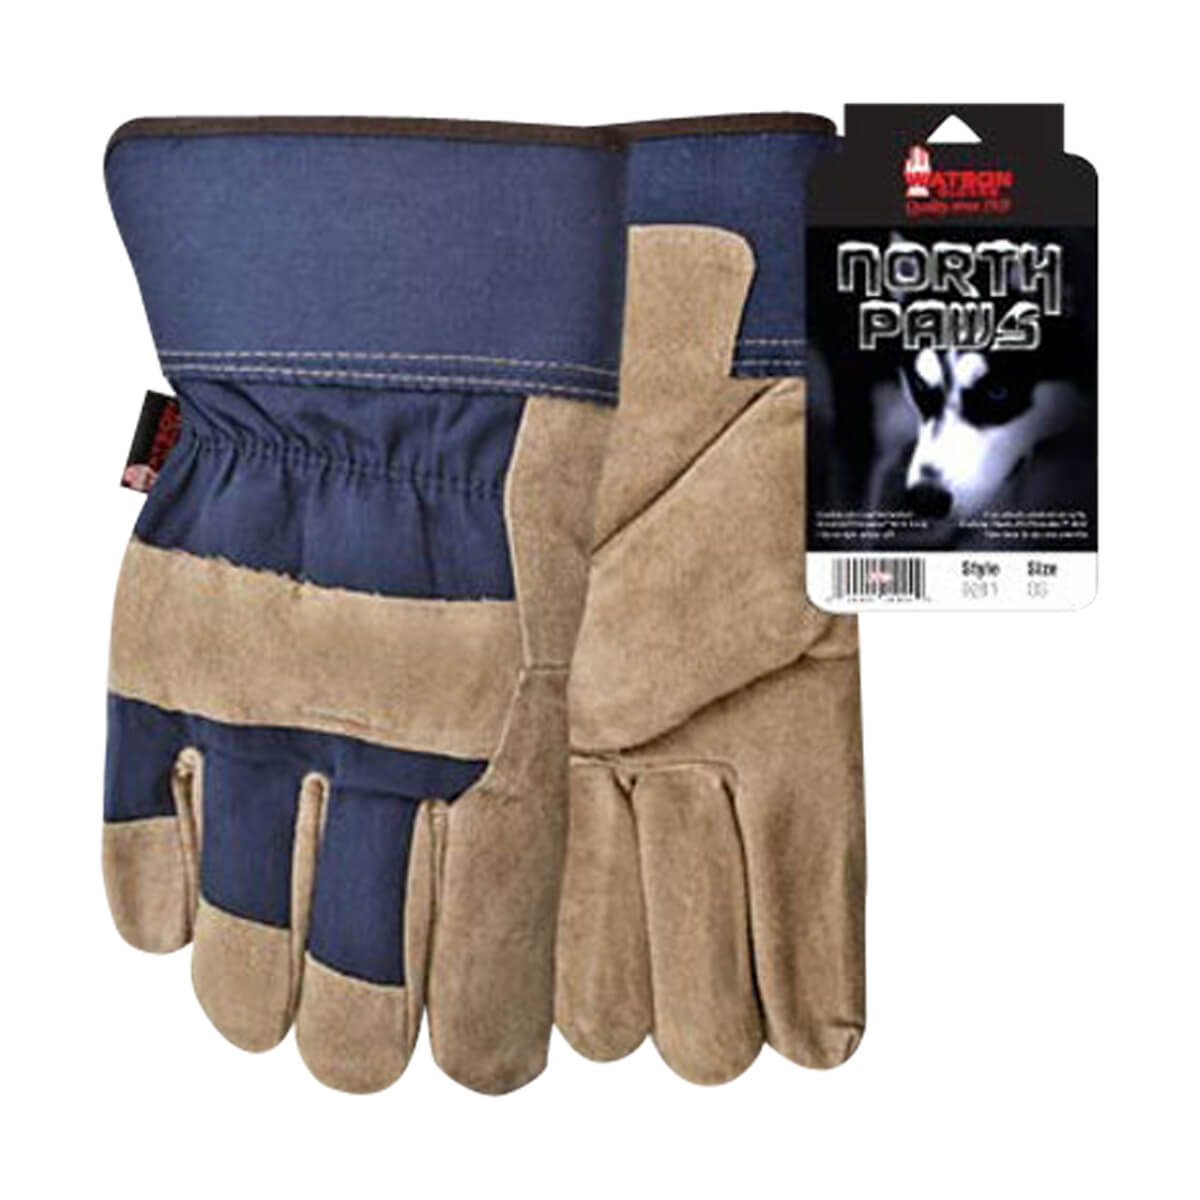 North Paws Gloves